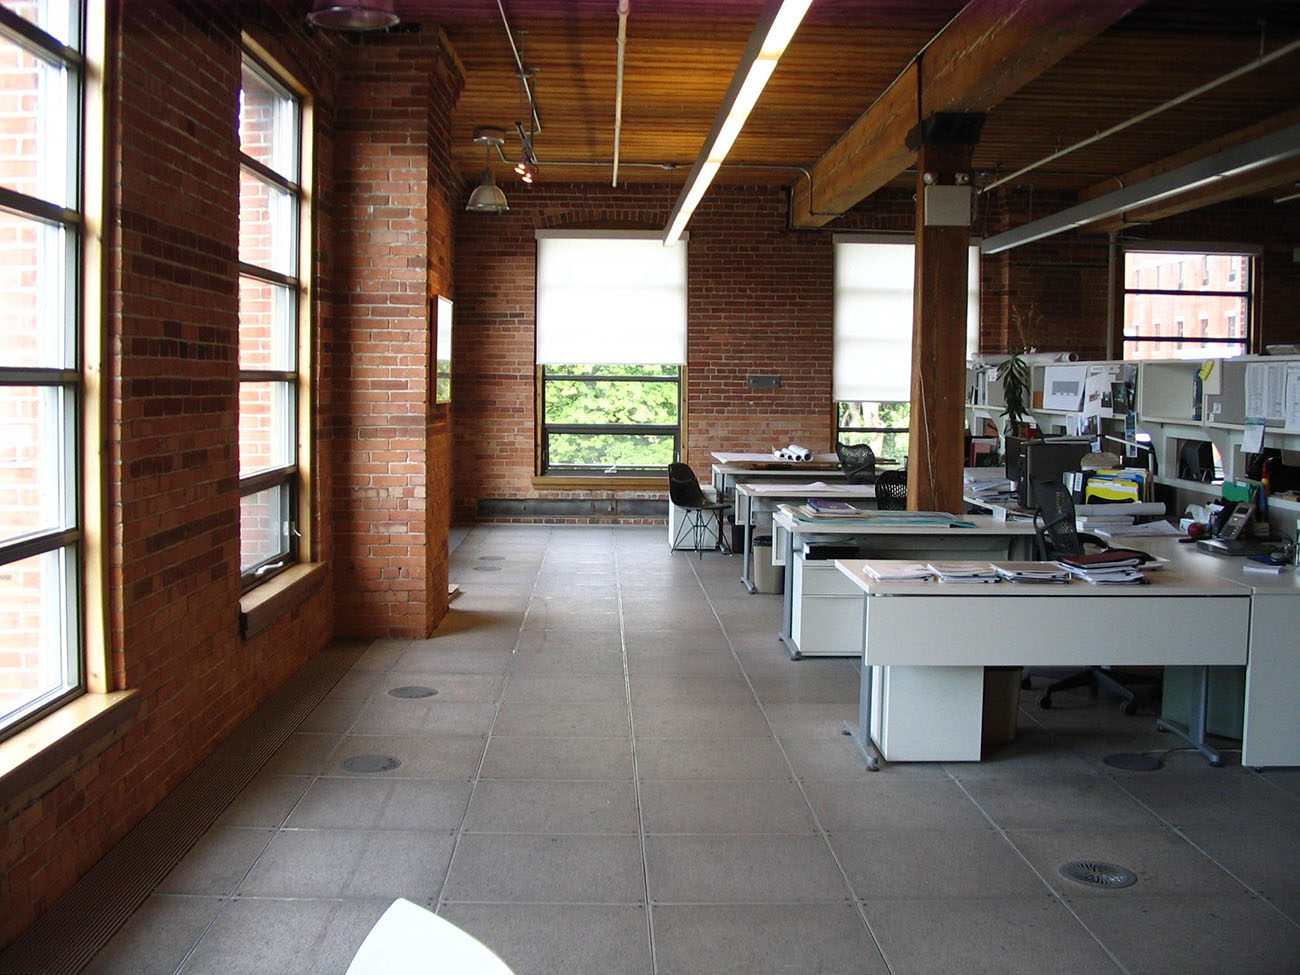 A photo shows a view of an open office.